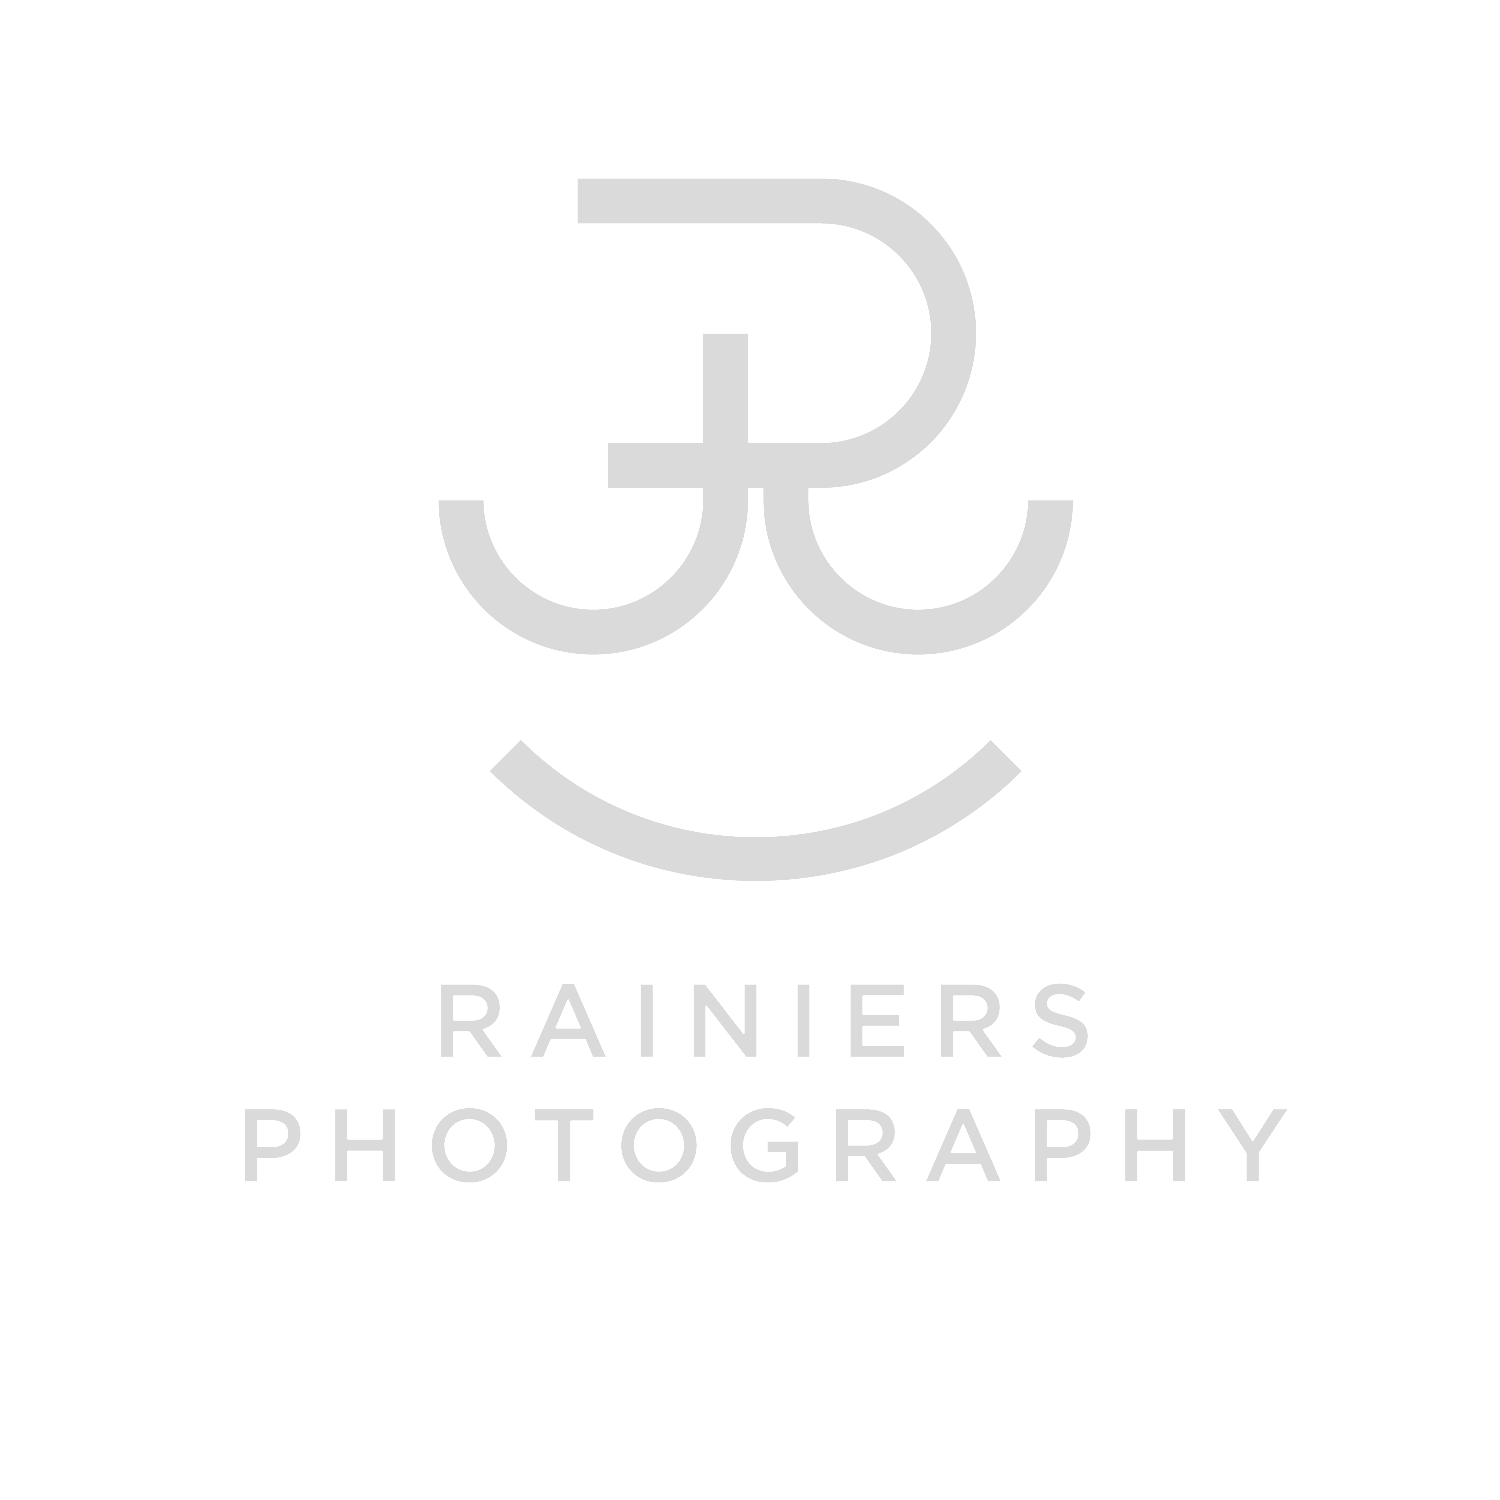 Rainiers Photography